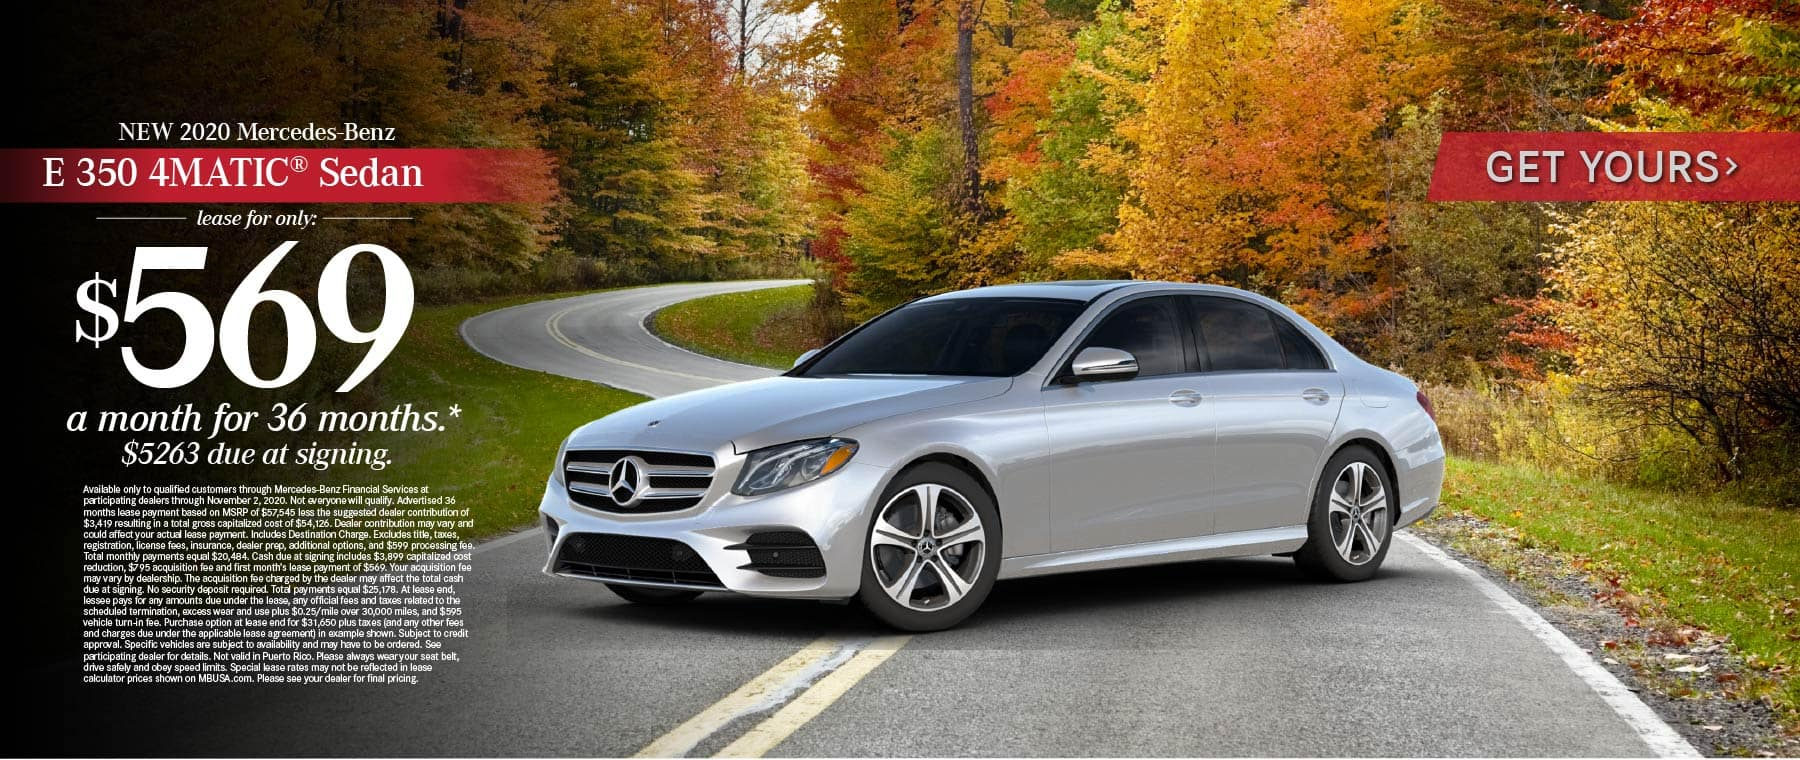 2020 Mercedes Benz E 350 4MATIC Sedan lease for only: $569 a month for 36 months* Get Yours.